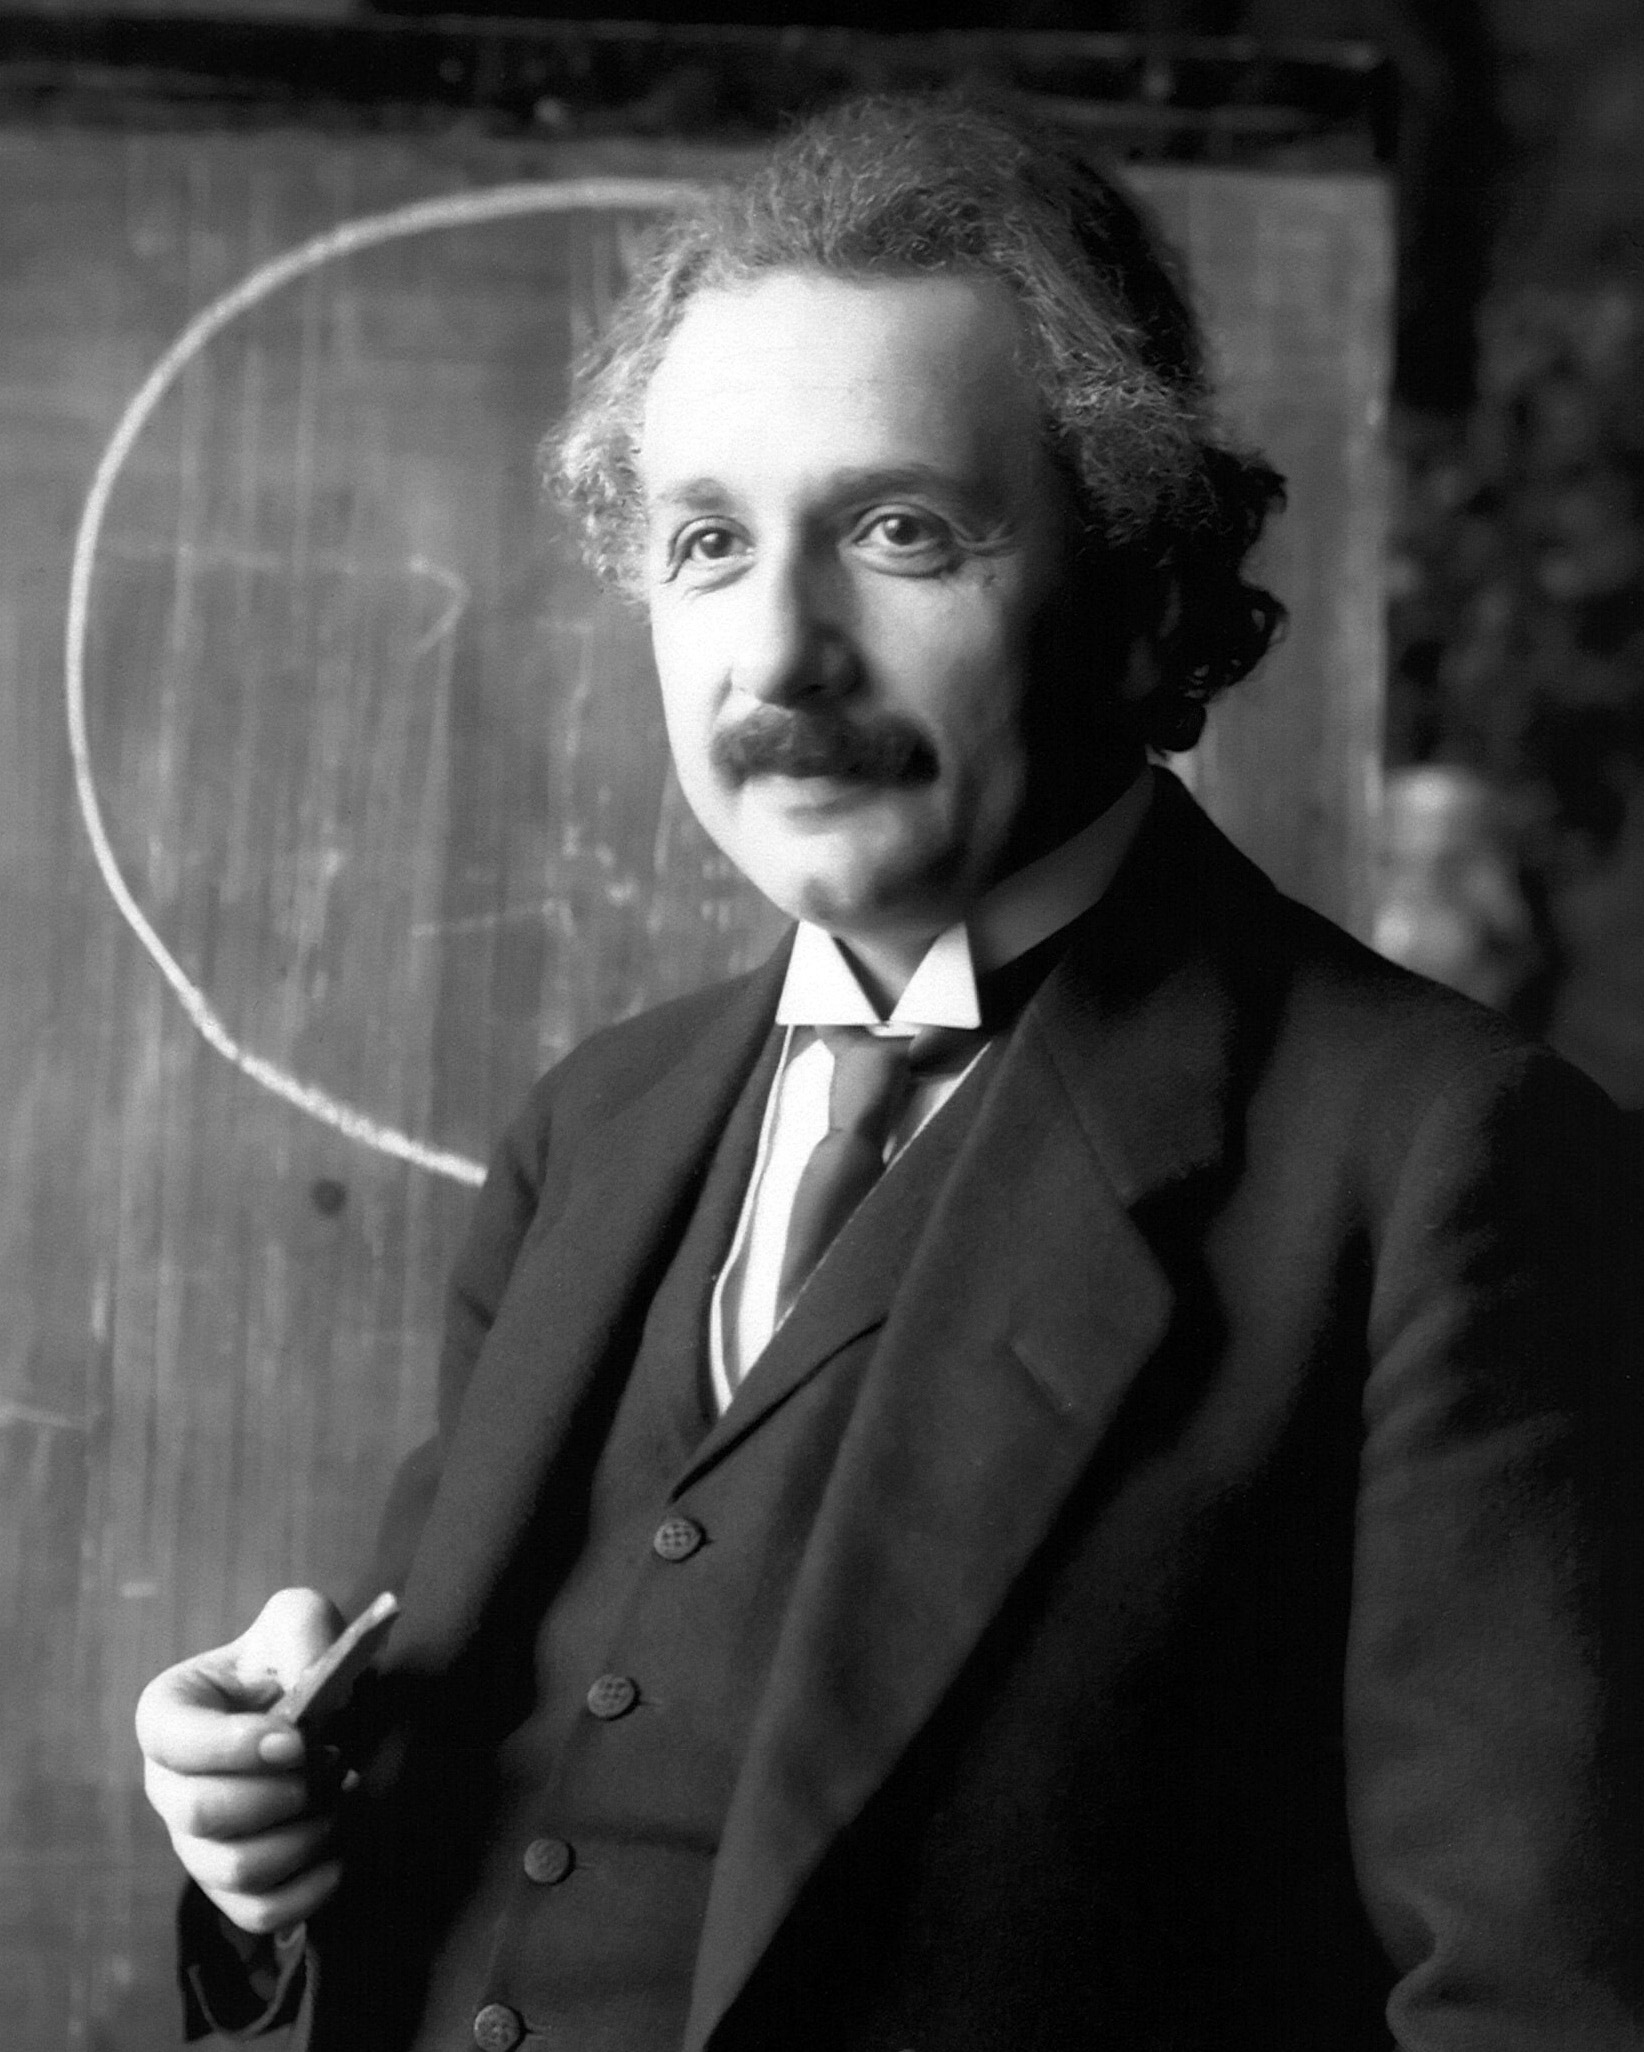 Einstein 1921 portrait2.jpg - Wikimedia Commons